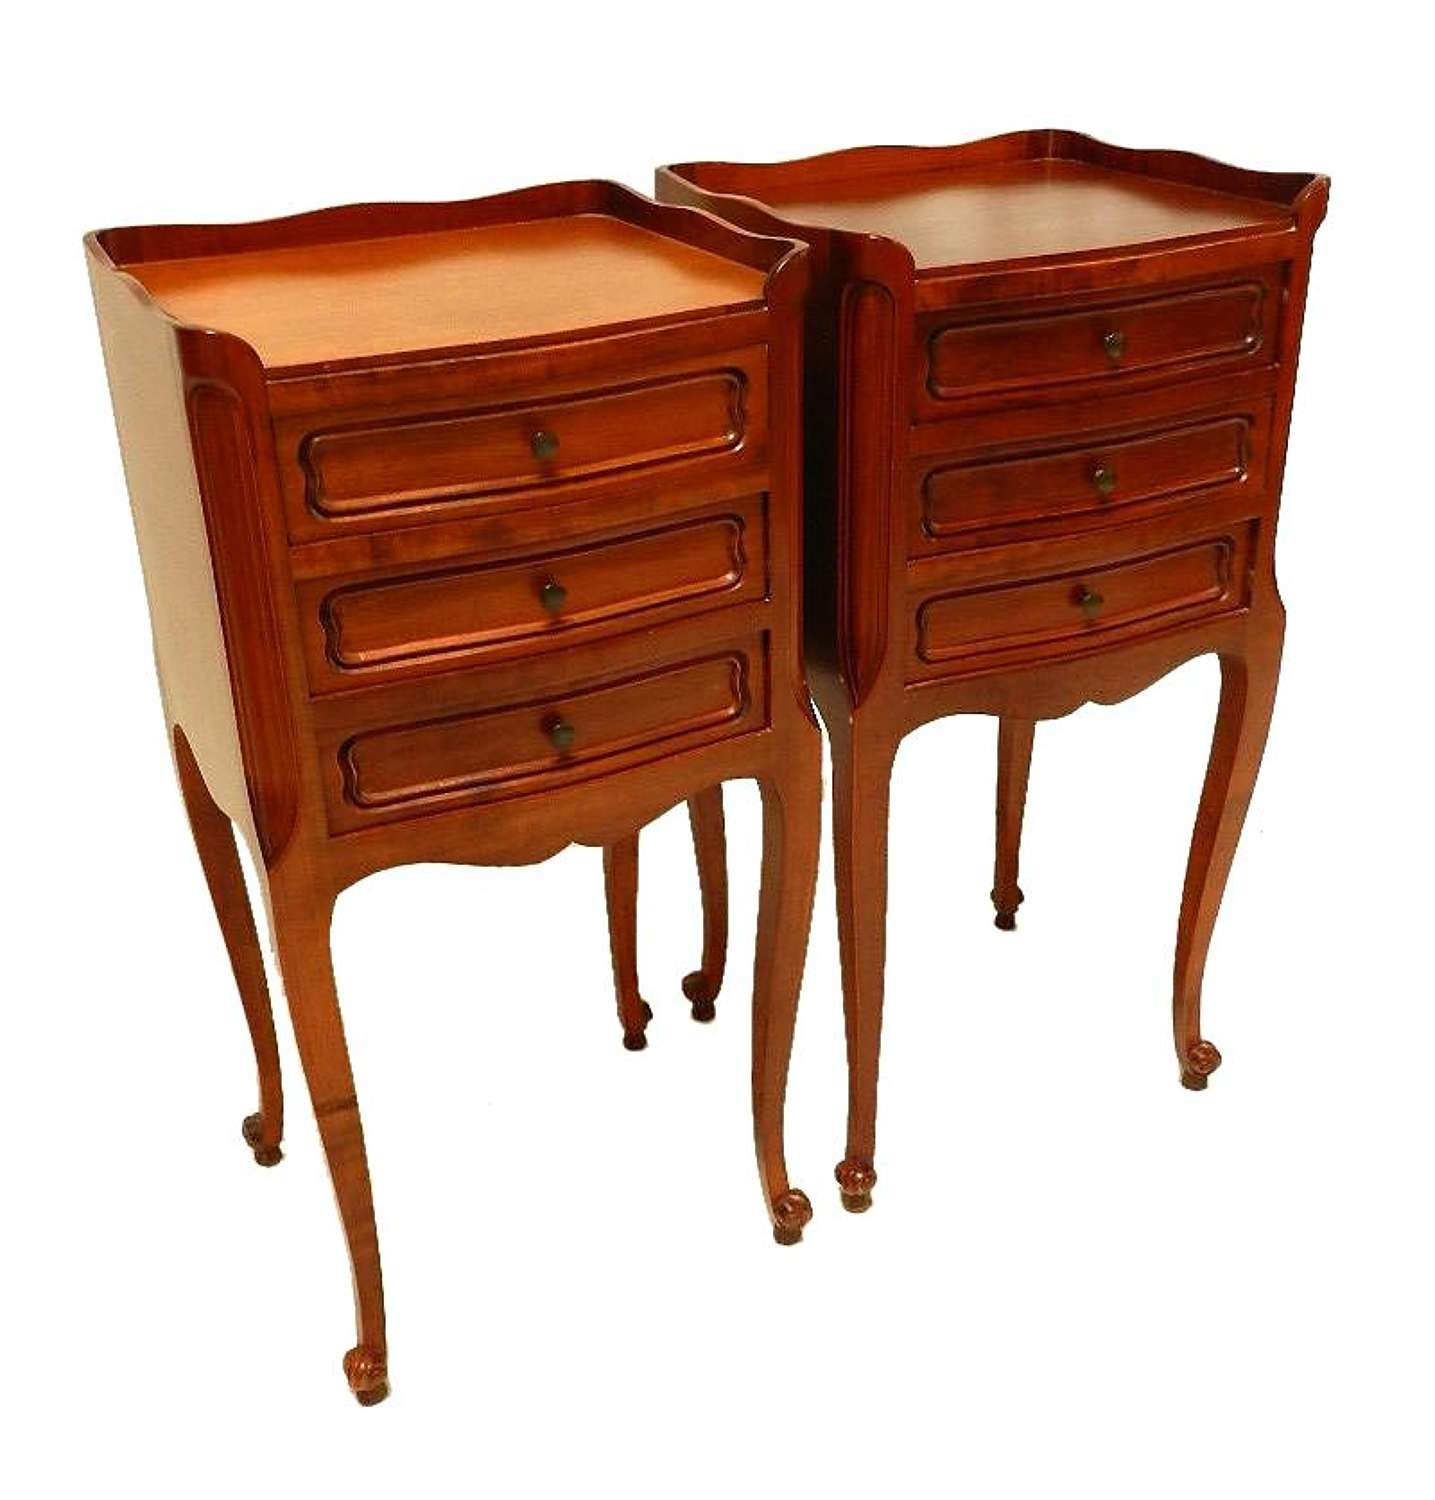 Pair of Louis revival Cherry French Bedside Tables Cabinet Nightstands